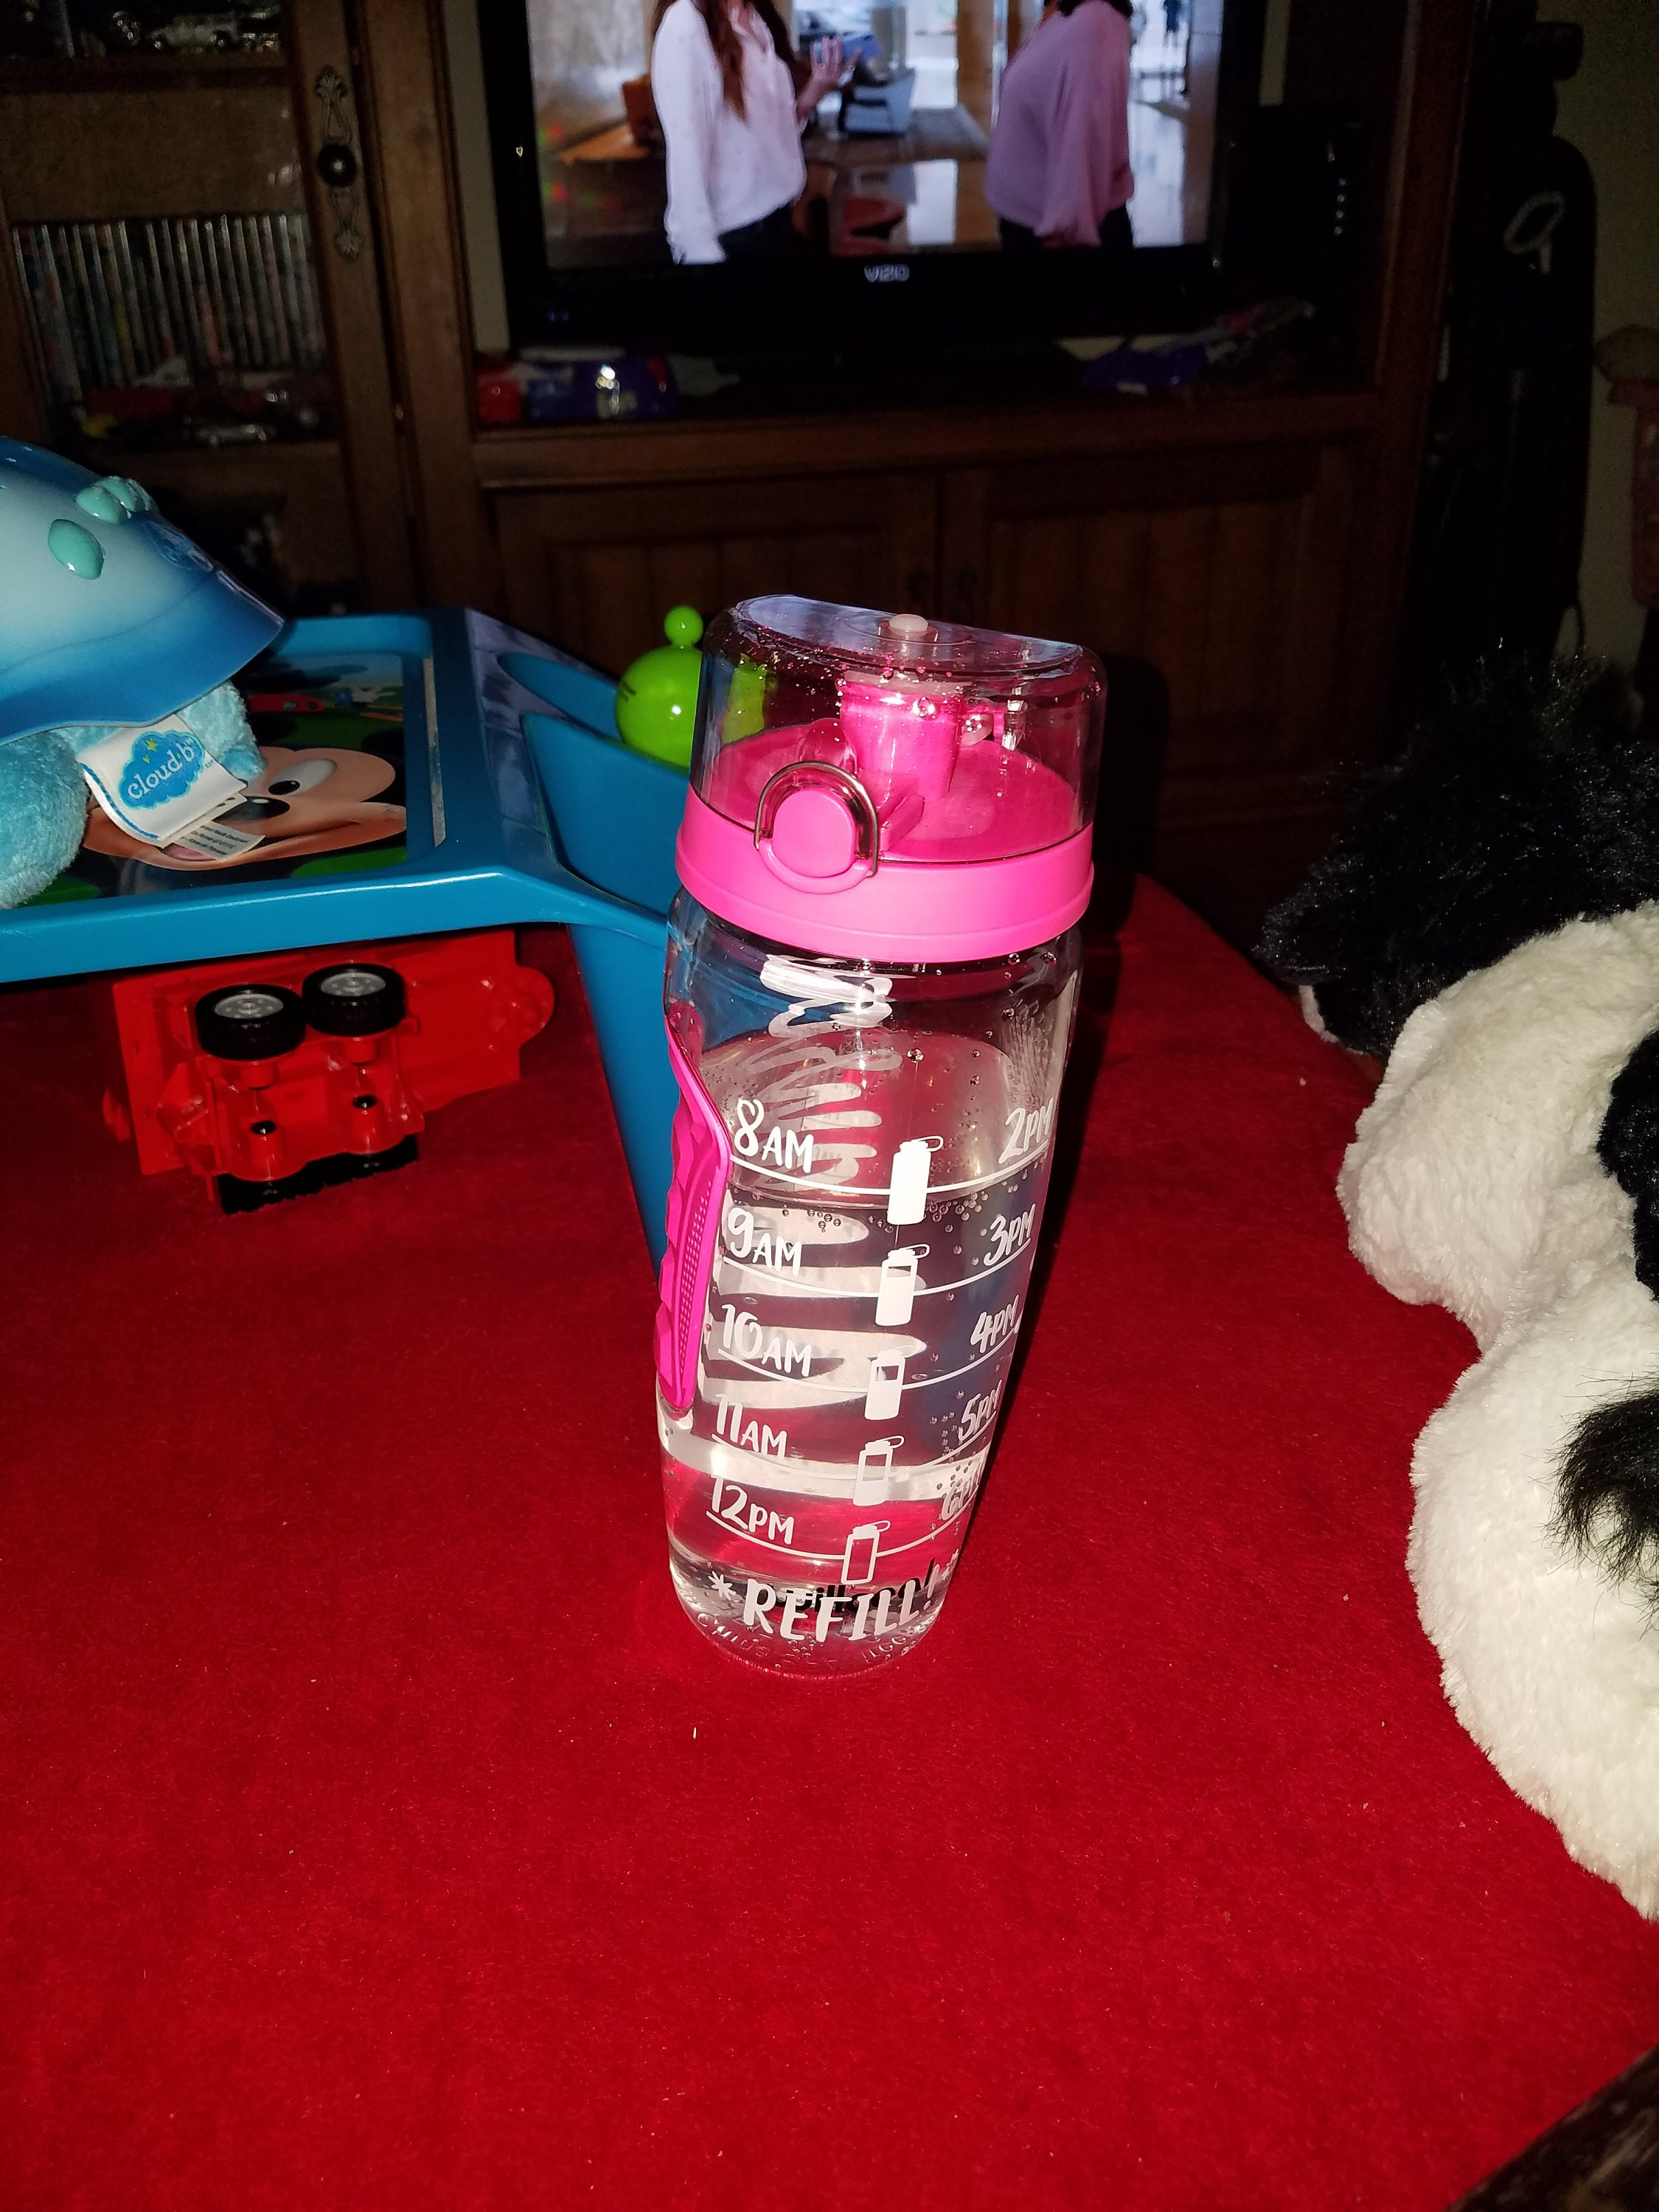 Laura Hensler added a photo of their purchase